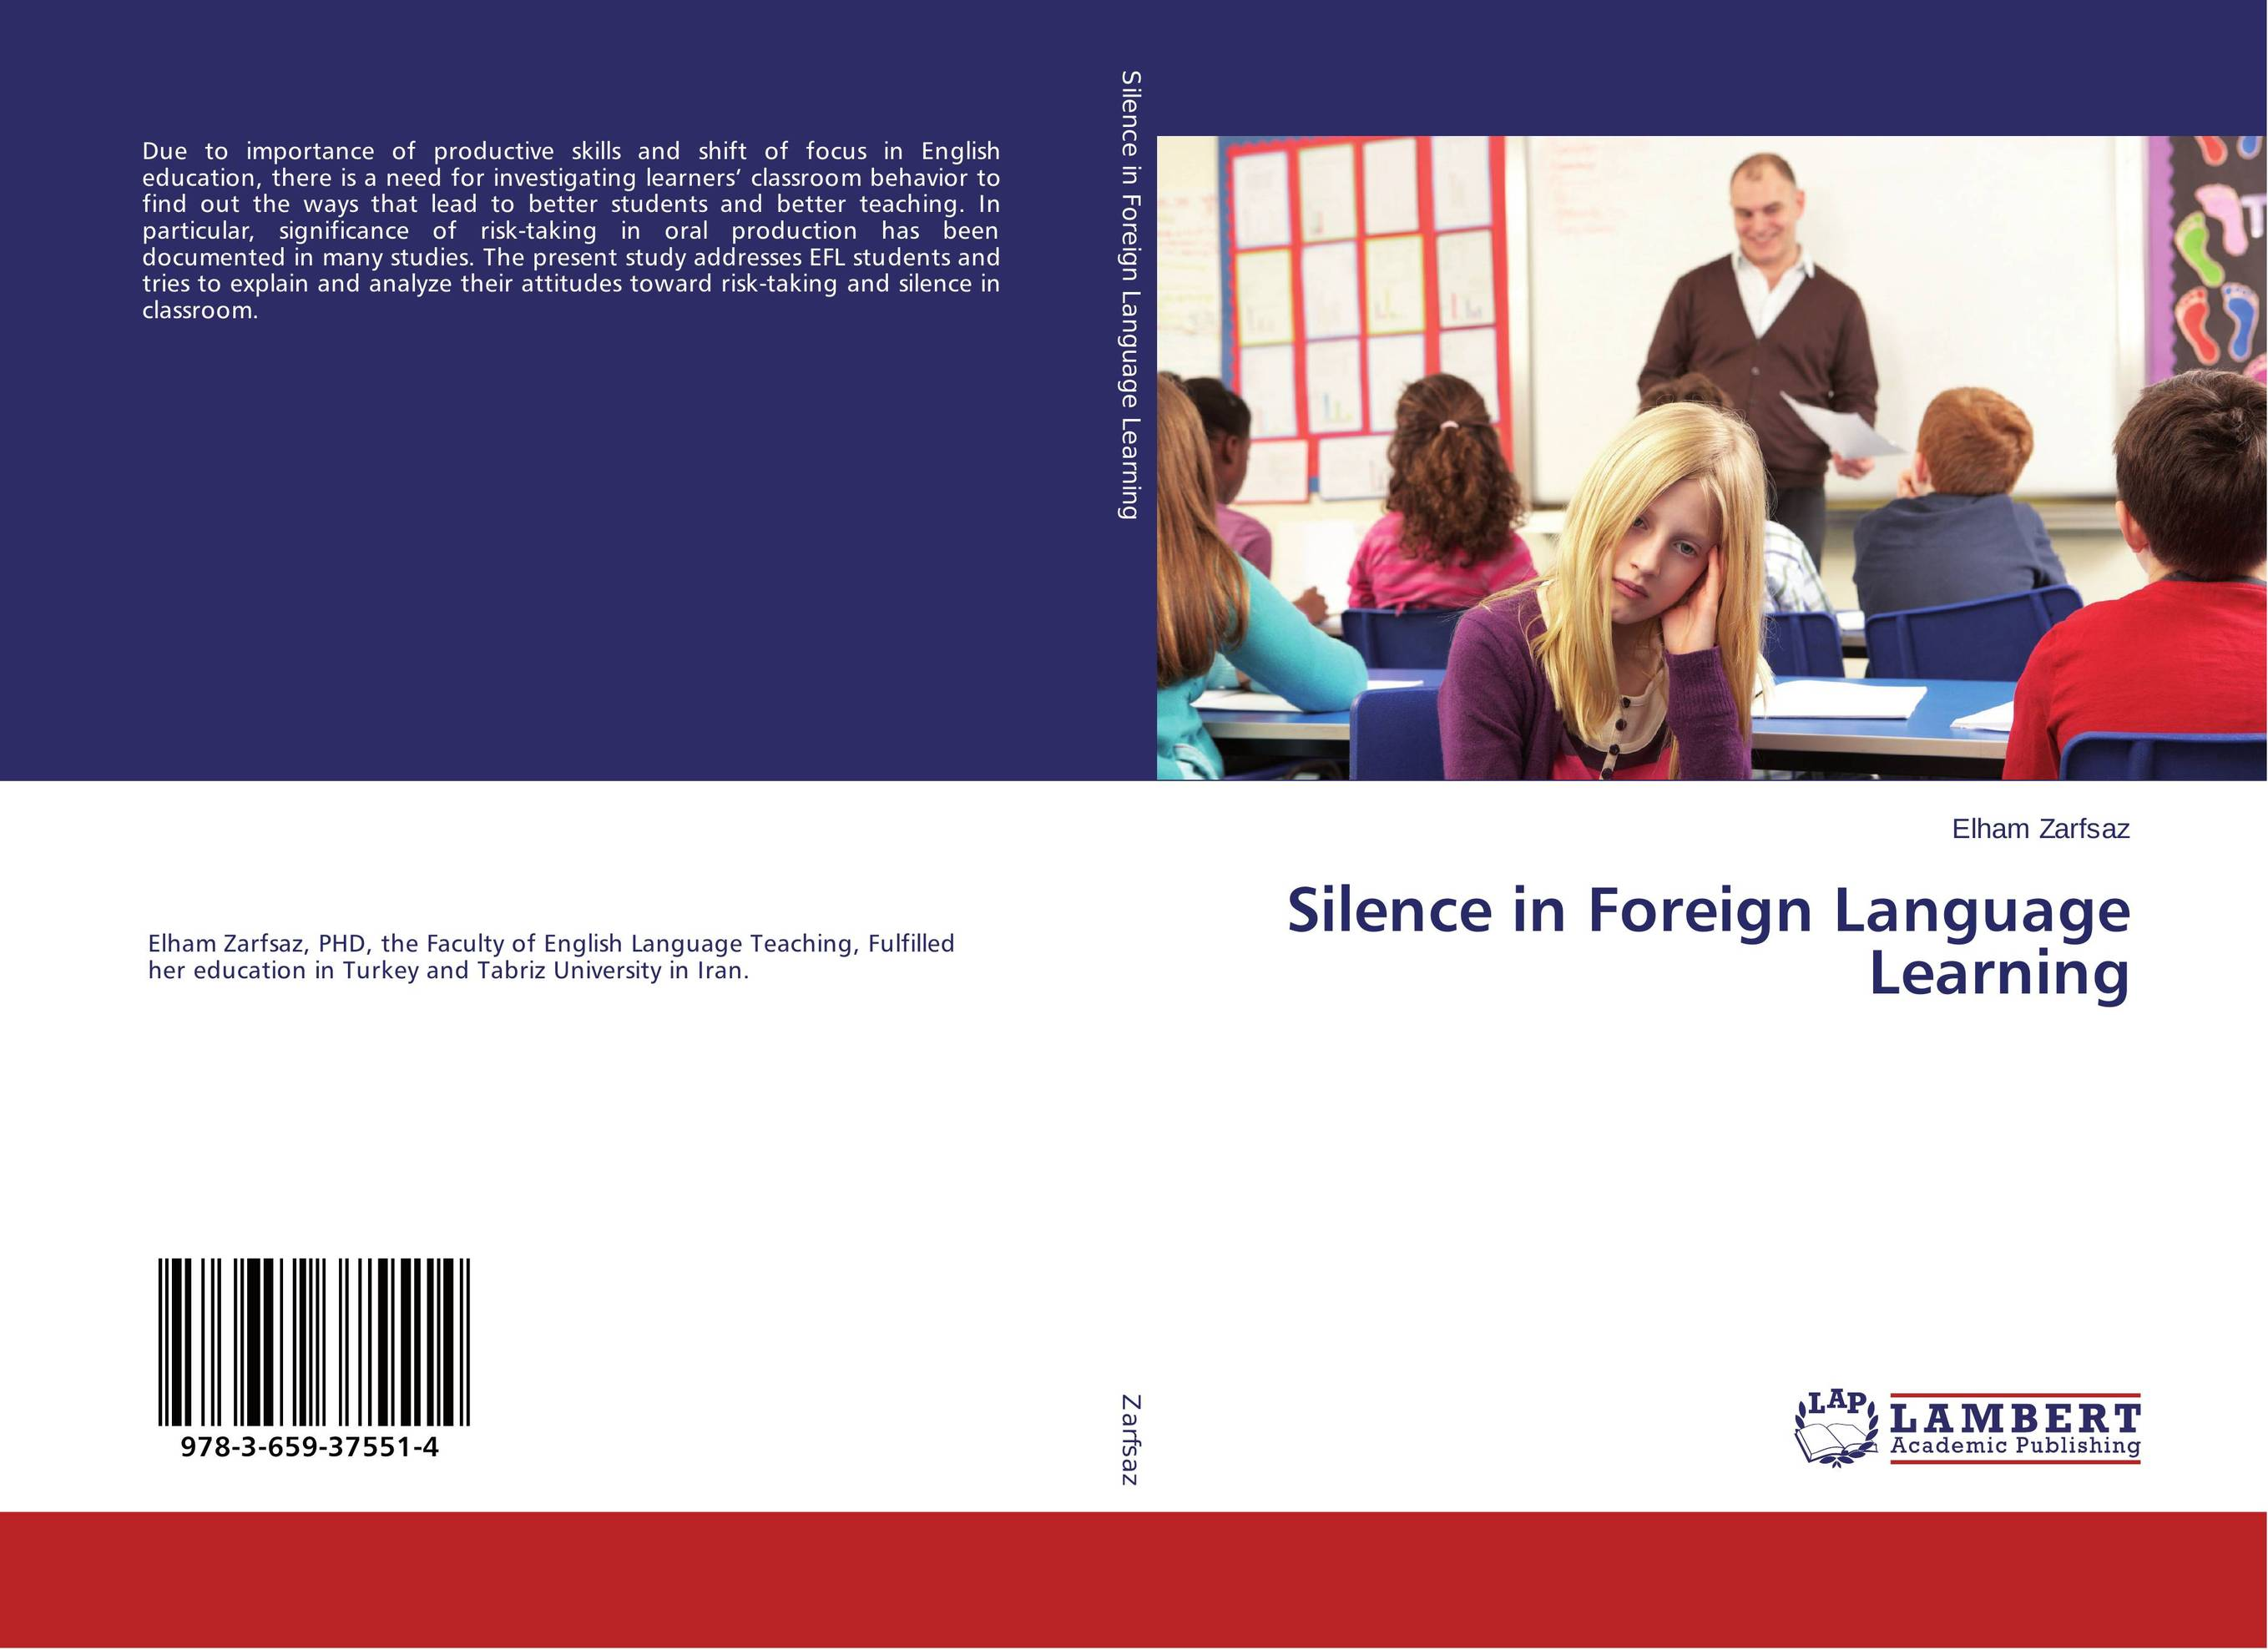 Silence in Foreign Language Learning the impact of technology toward students performance